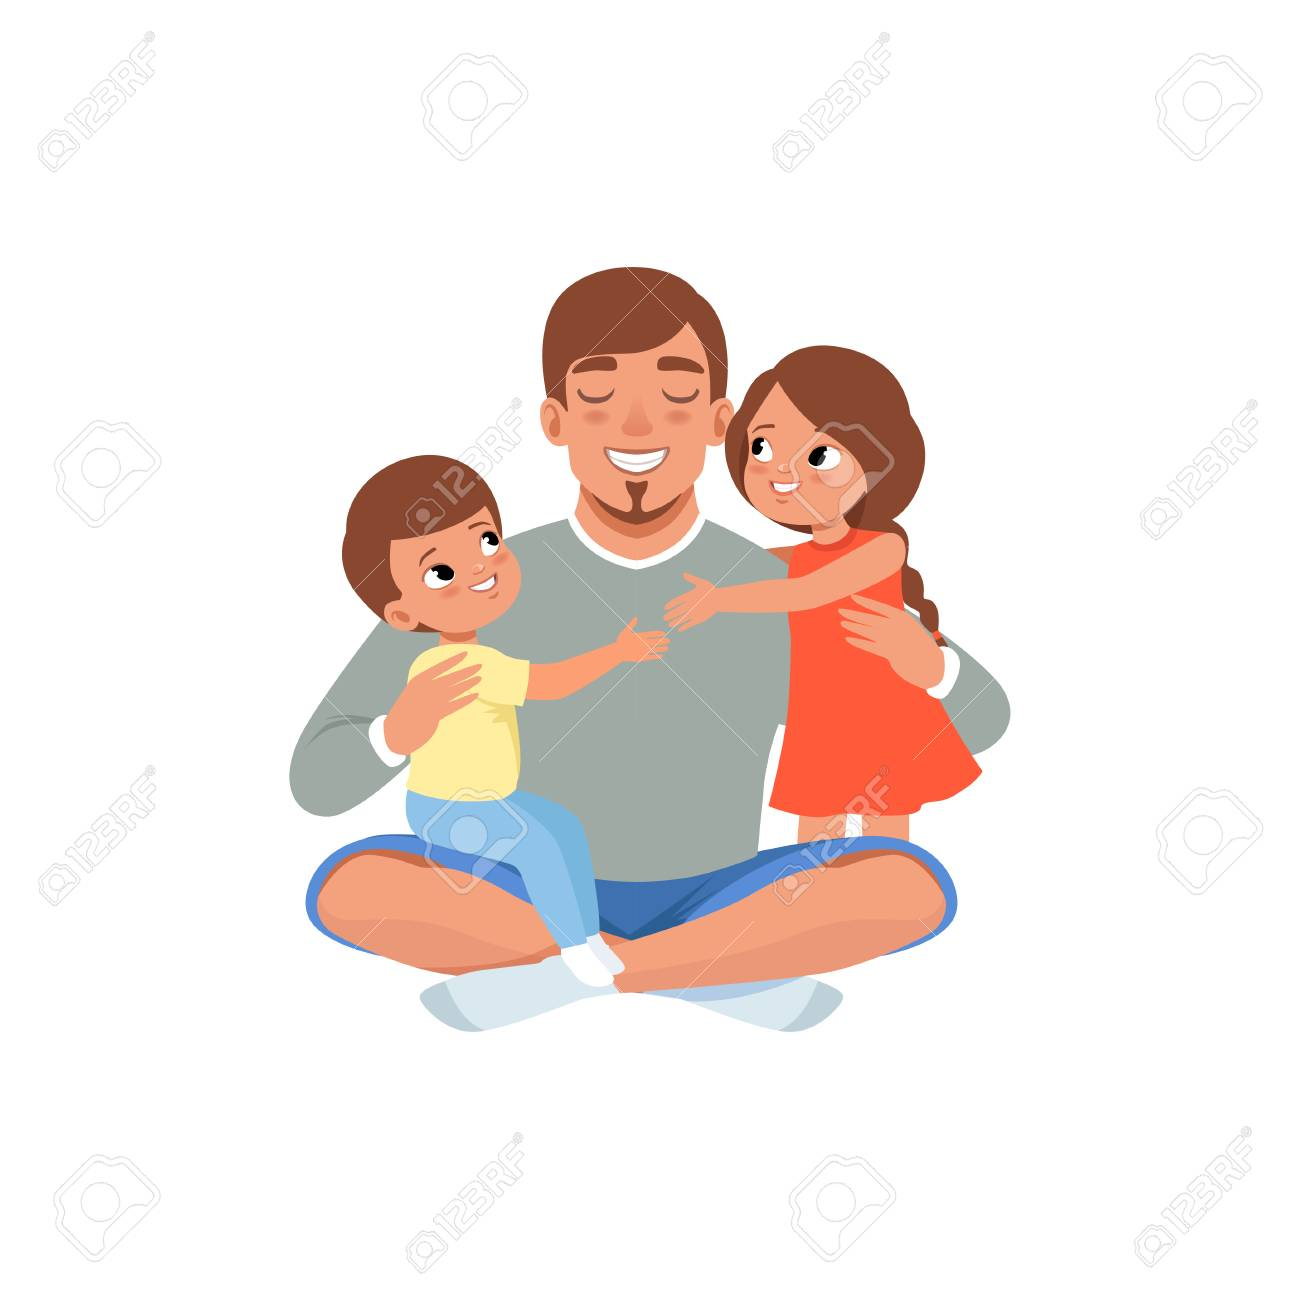 Happy father with his two children , loving dad and kid spending time together vector Illustration isolated on a white background. - 96707804